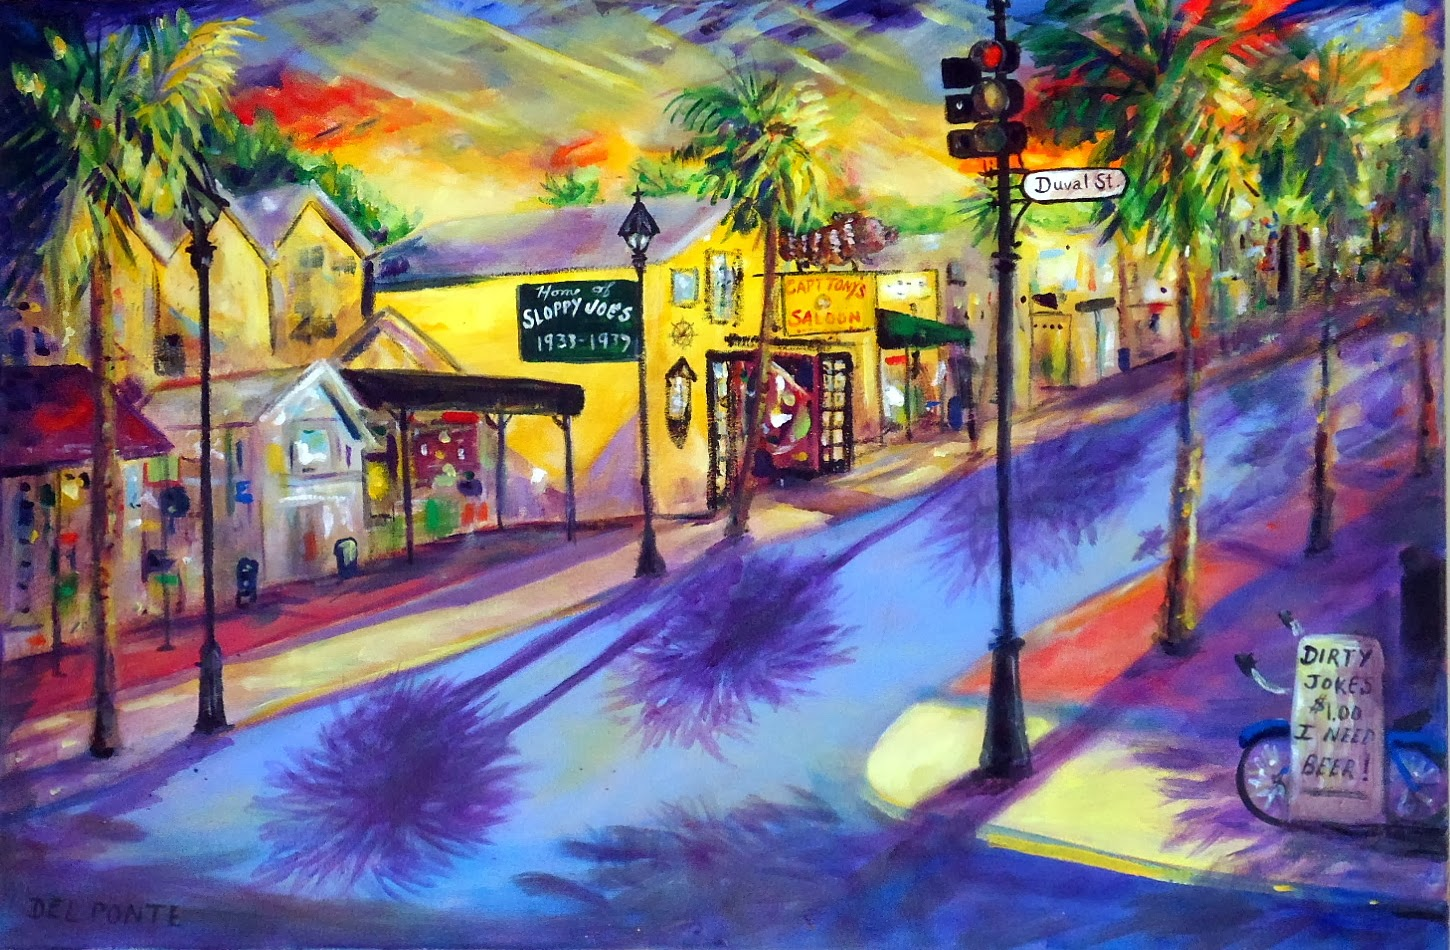 DEL PONTE Style Full Time Professional Artist KEY WEST